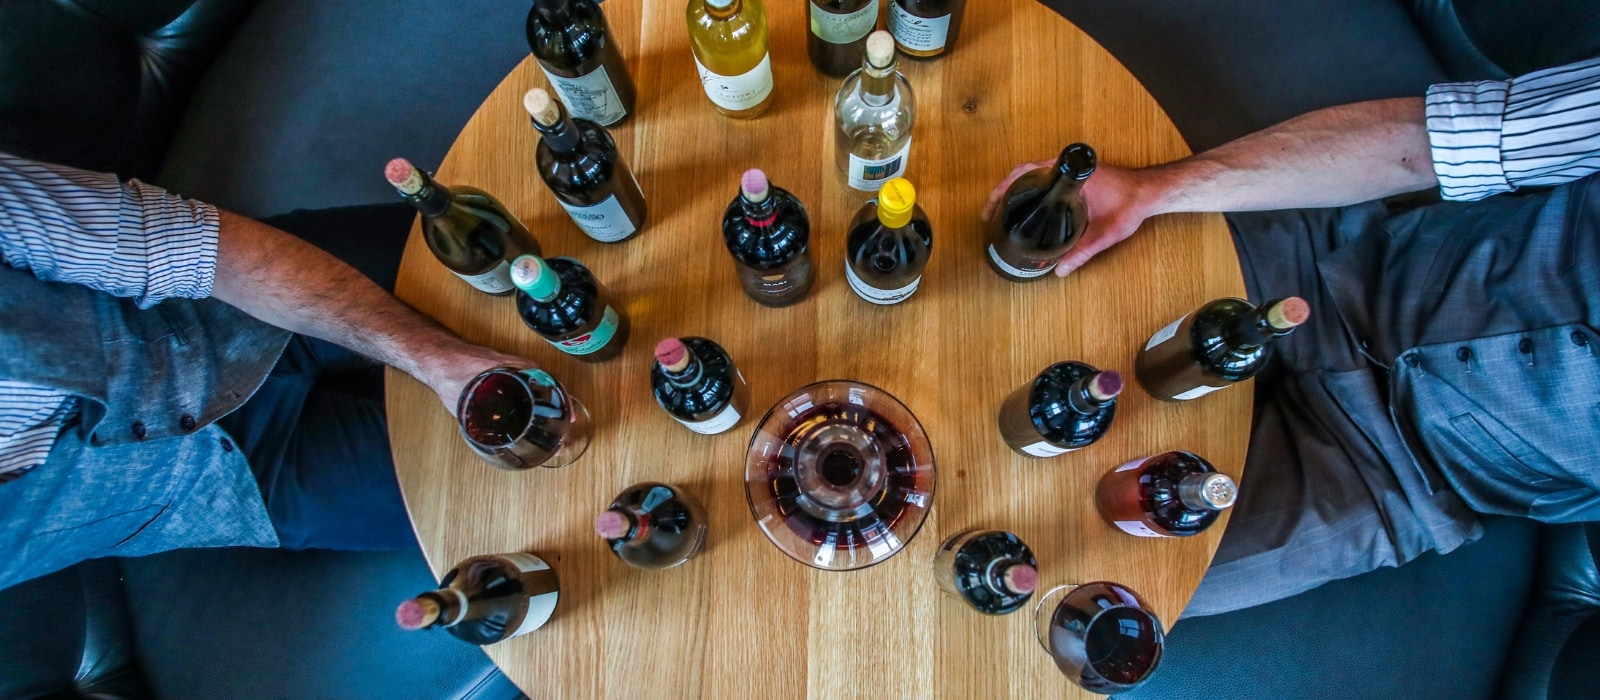 What to Wear Wine Tasting as a Guy  Wine Tasting for Men  Mens Fashion Tips for Wine Tasting  Wine Tasting Fashion Tips for Men  What Men Should Wear When Wine Tasting  #winetasting #fashion #mensfashion #wine